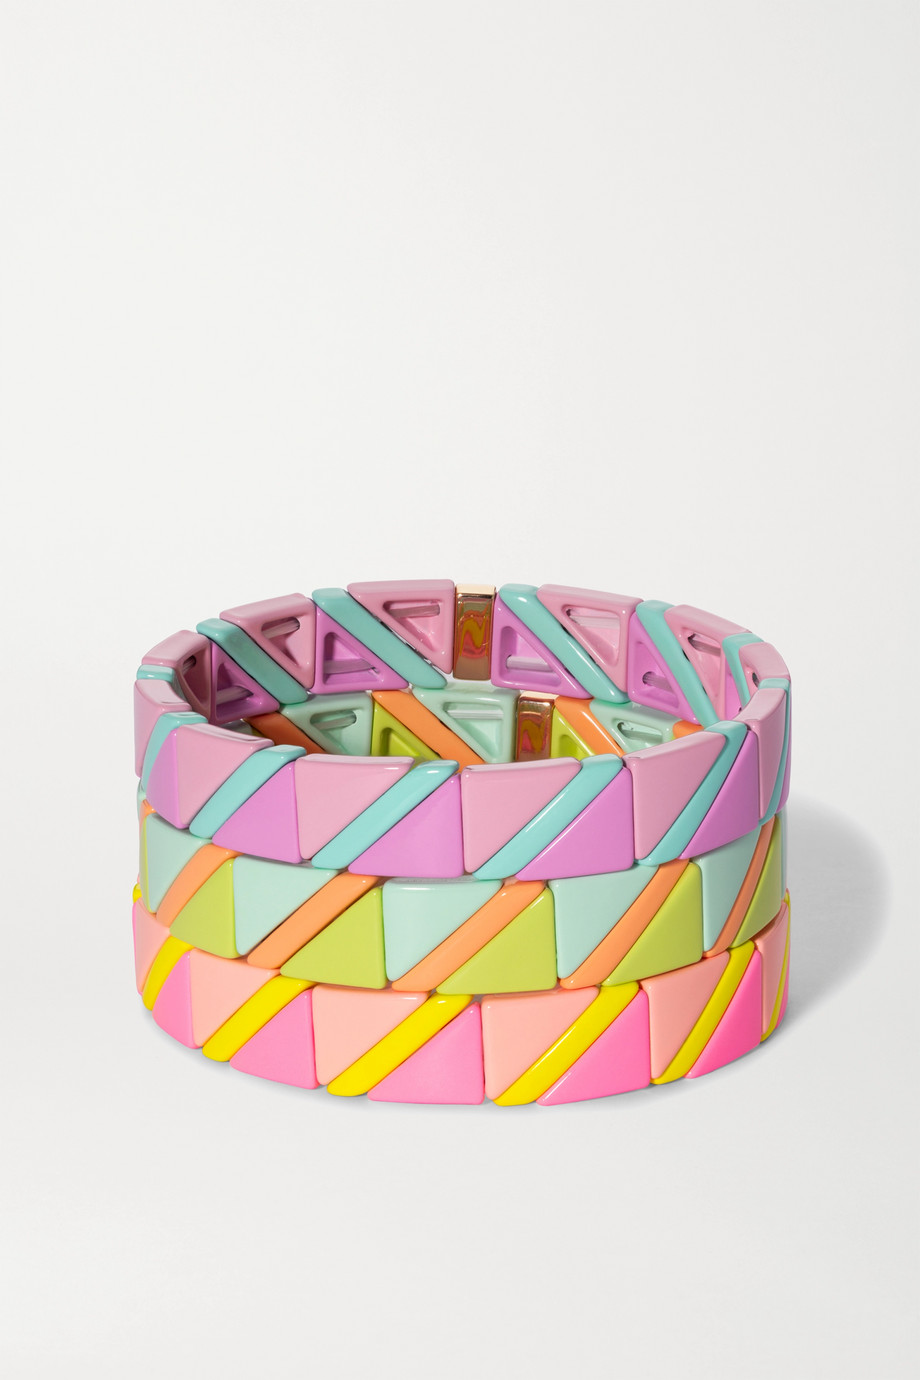 Roxanne Assoulin Delicate Neon set of three enamel bracelets